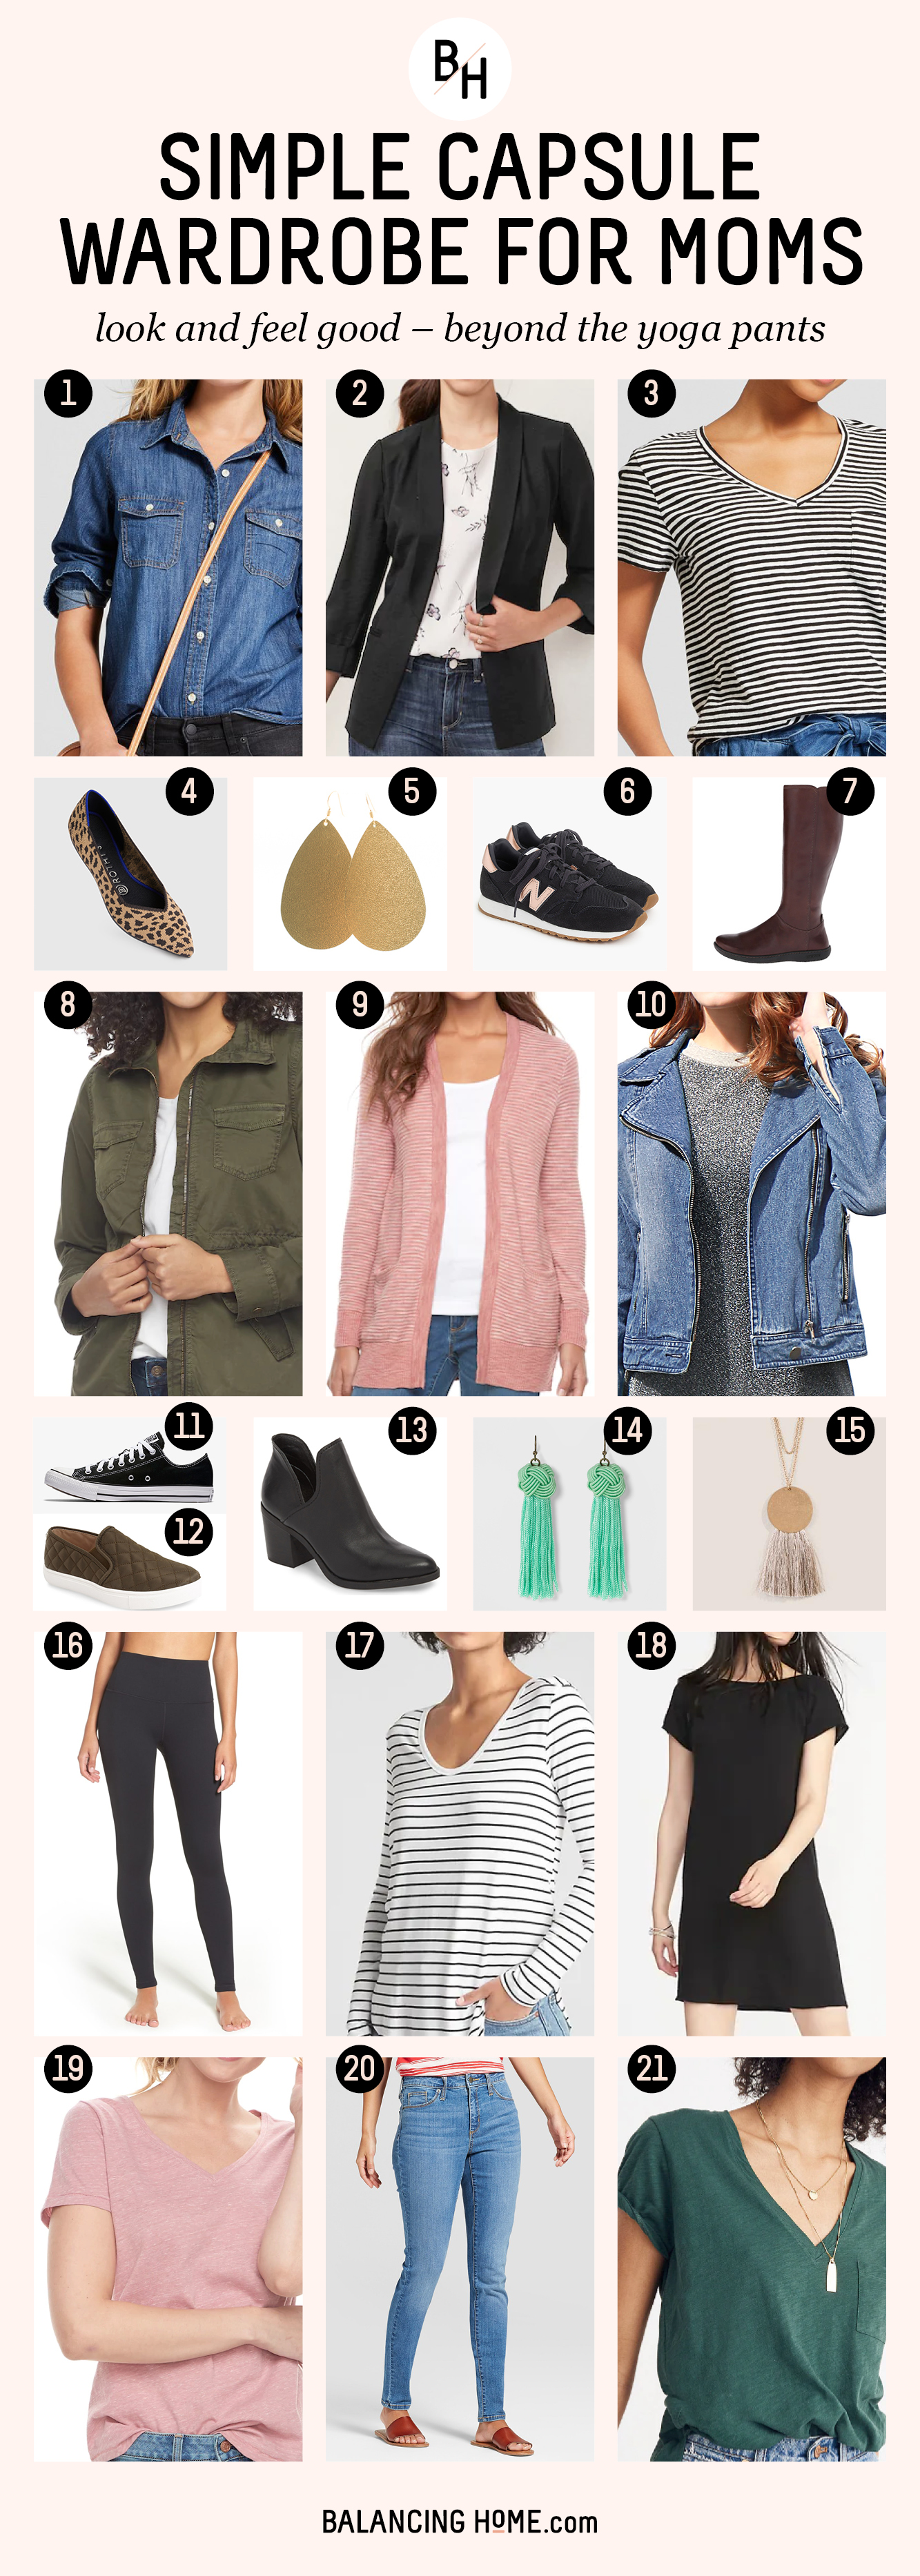 Simple capsule wardrobe for moms. Look good and feel good with easy, affordable and comfortable basics.